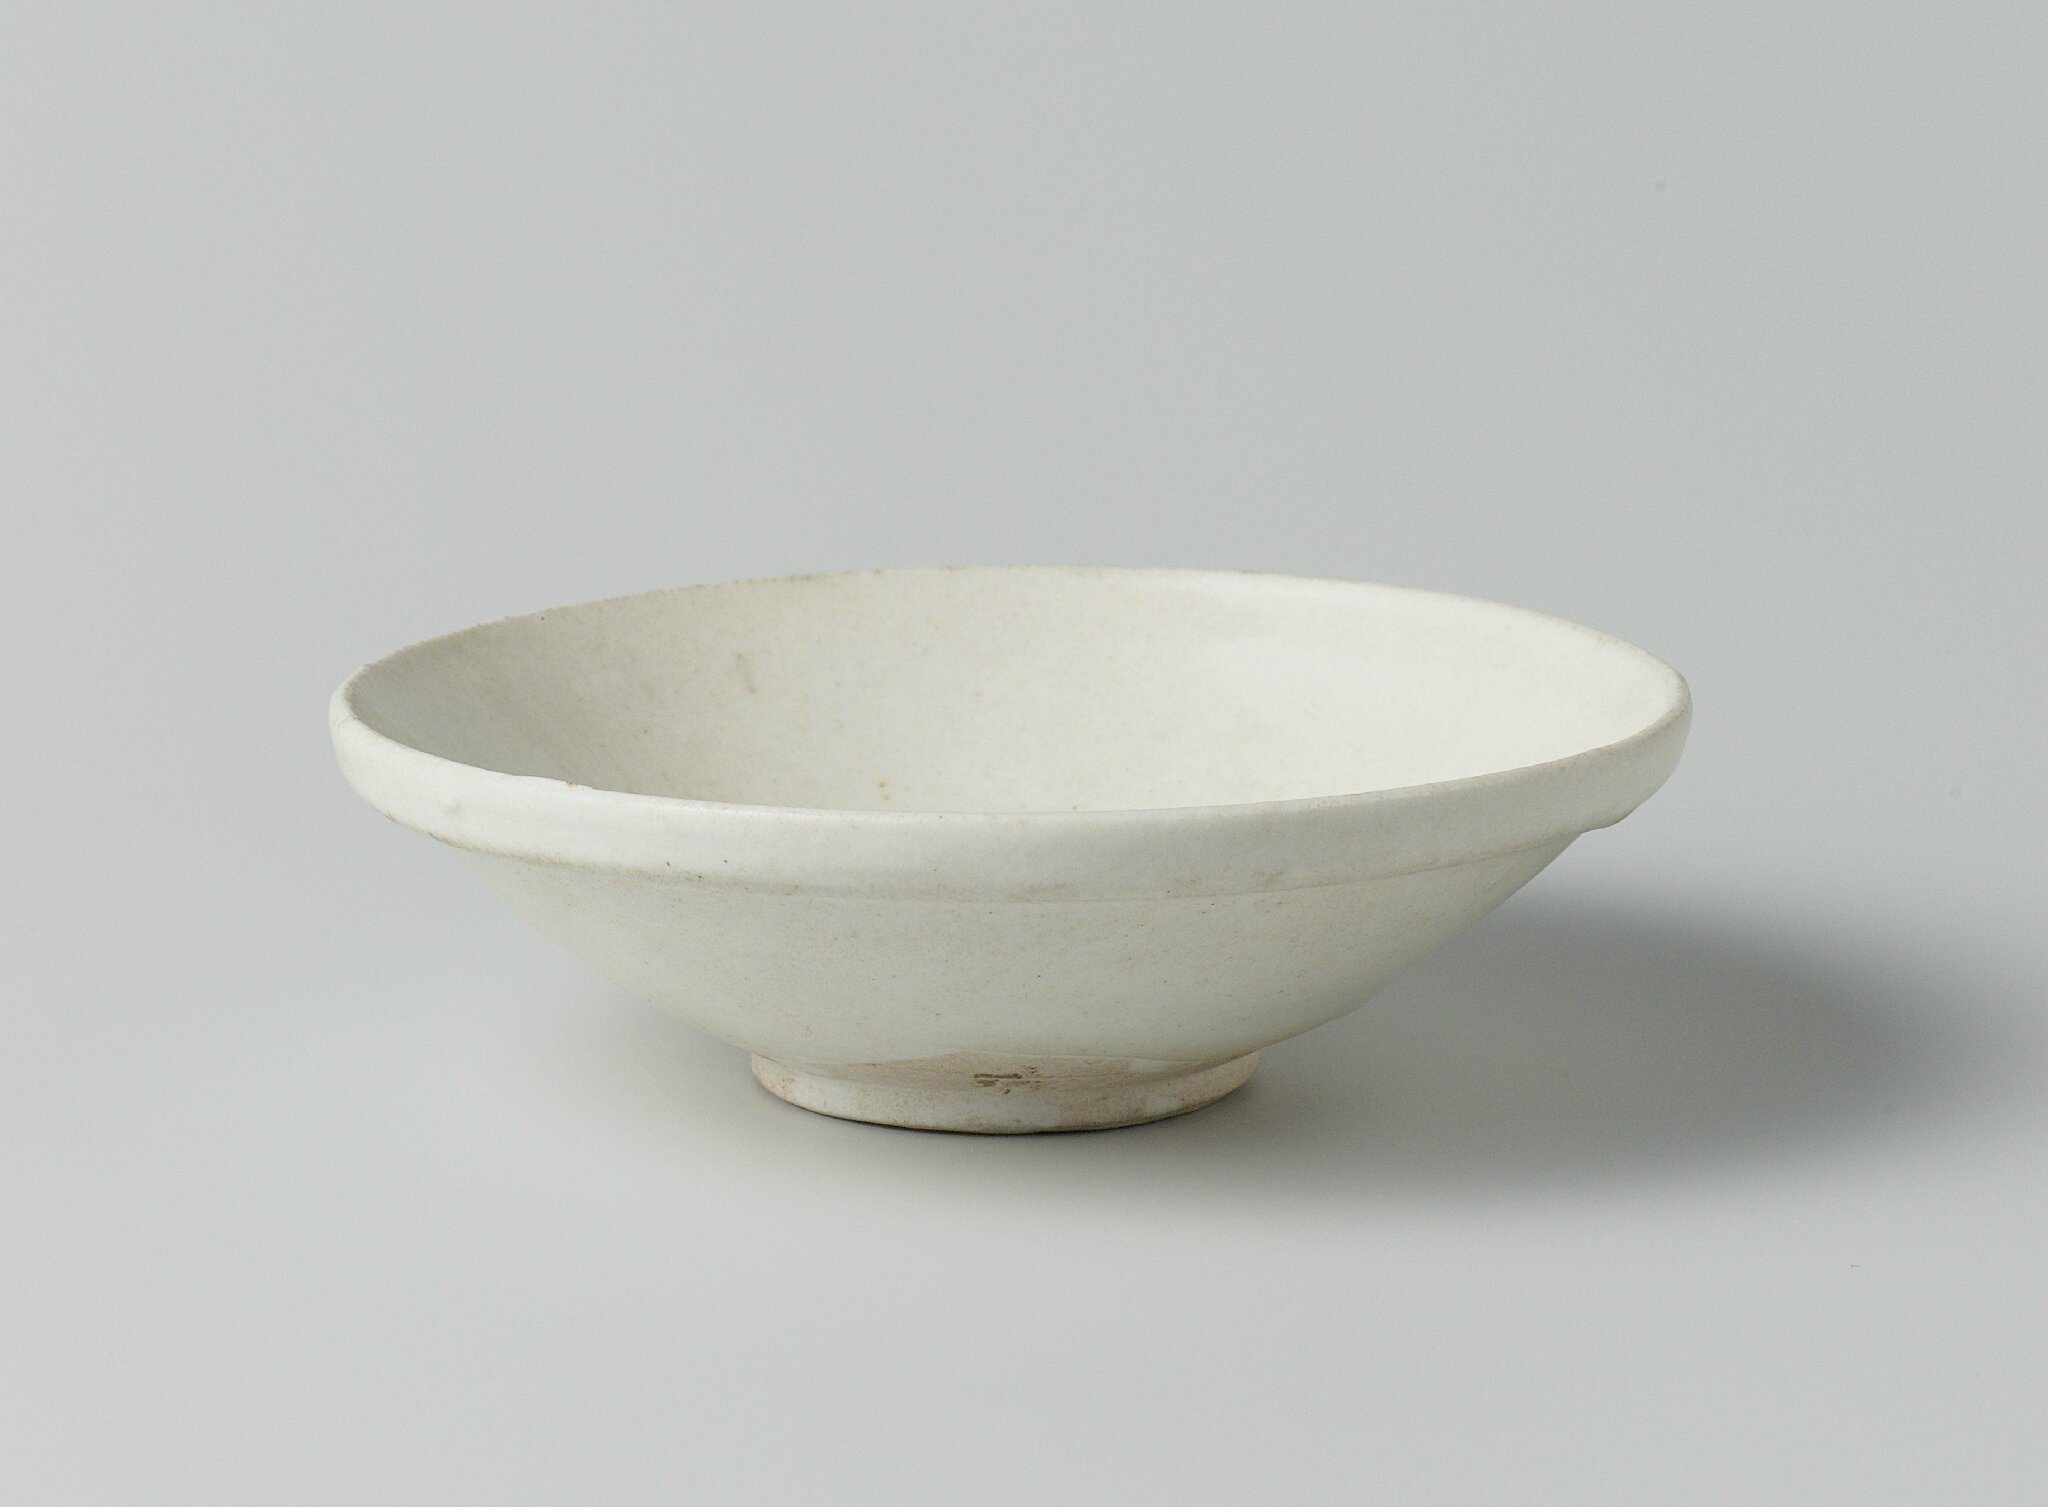 Shallow bowl, Tang dynasty, 618-907